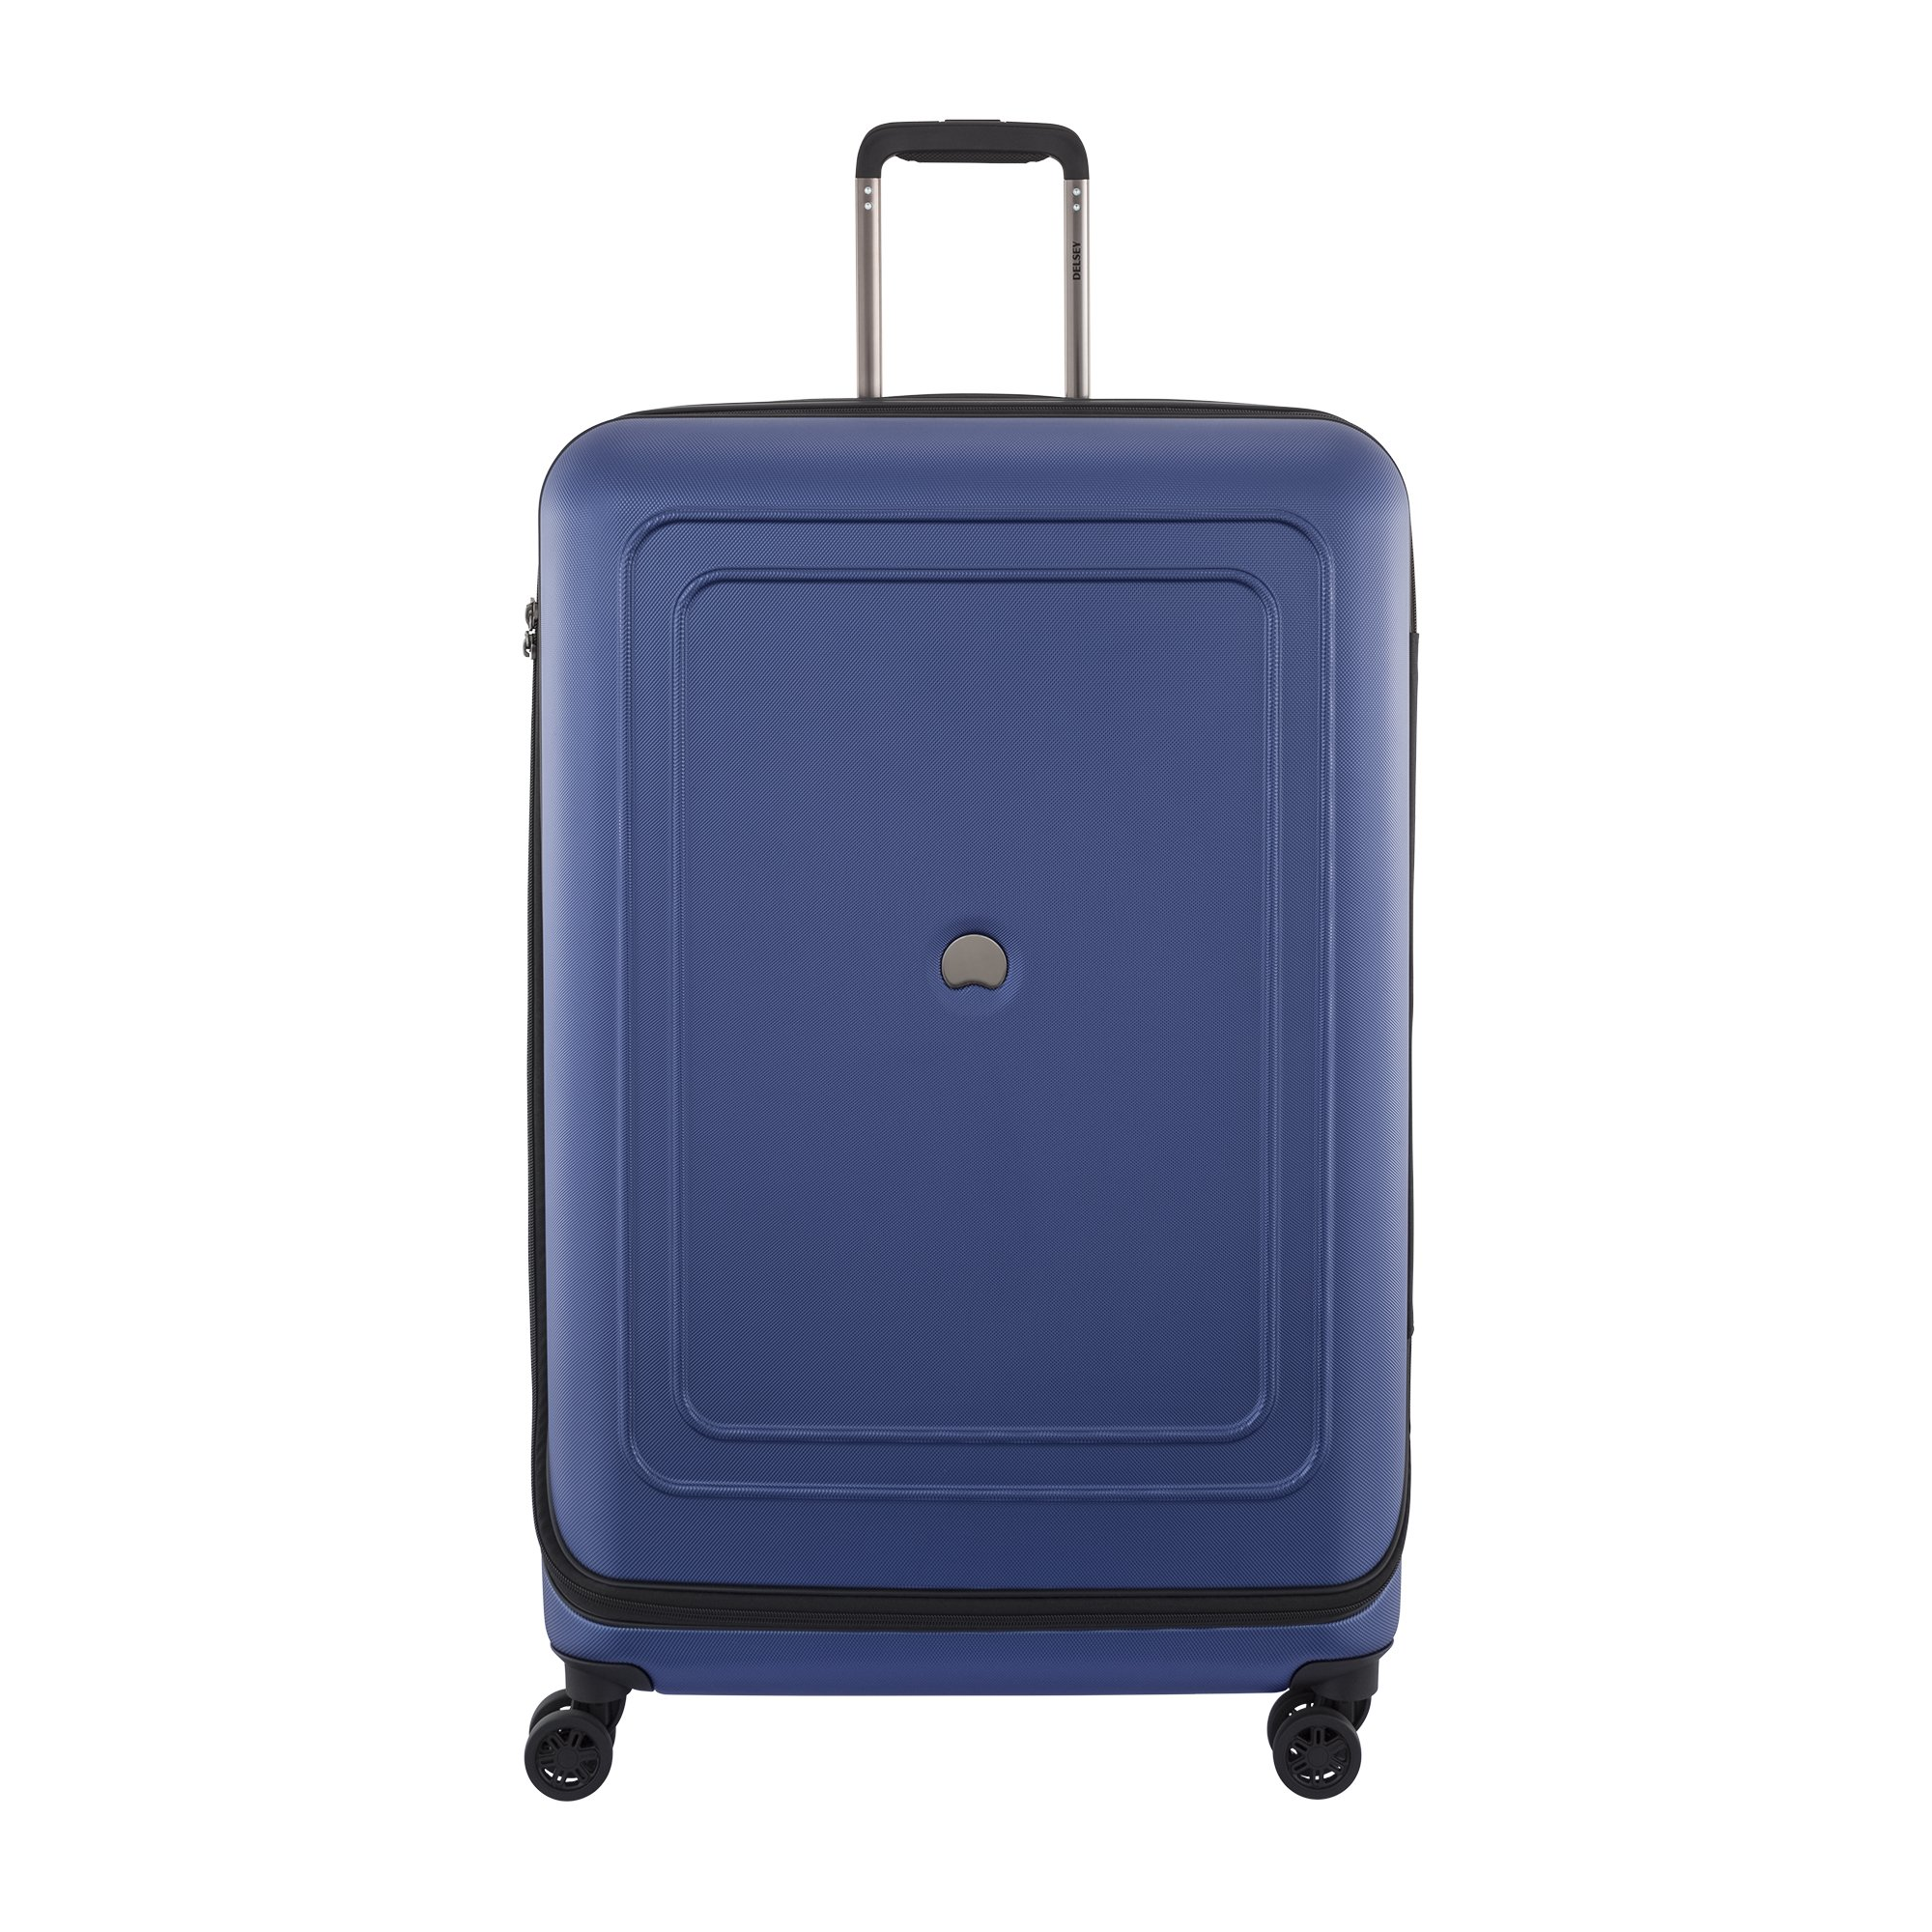 Delsey Luggage Cruise Lite Hardside 29'' Exp. Spinner Trolley, Blue